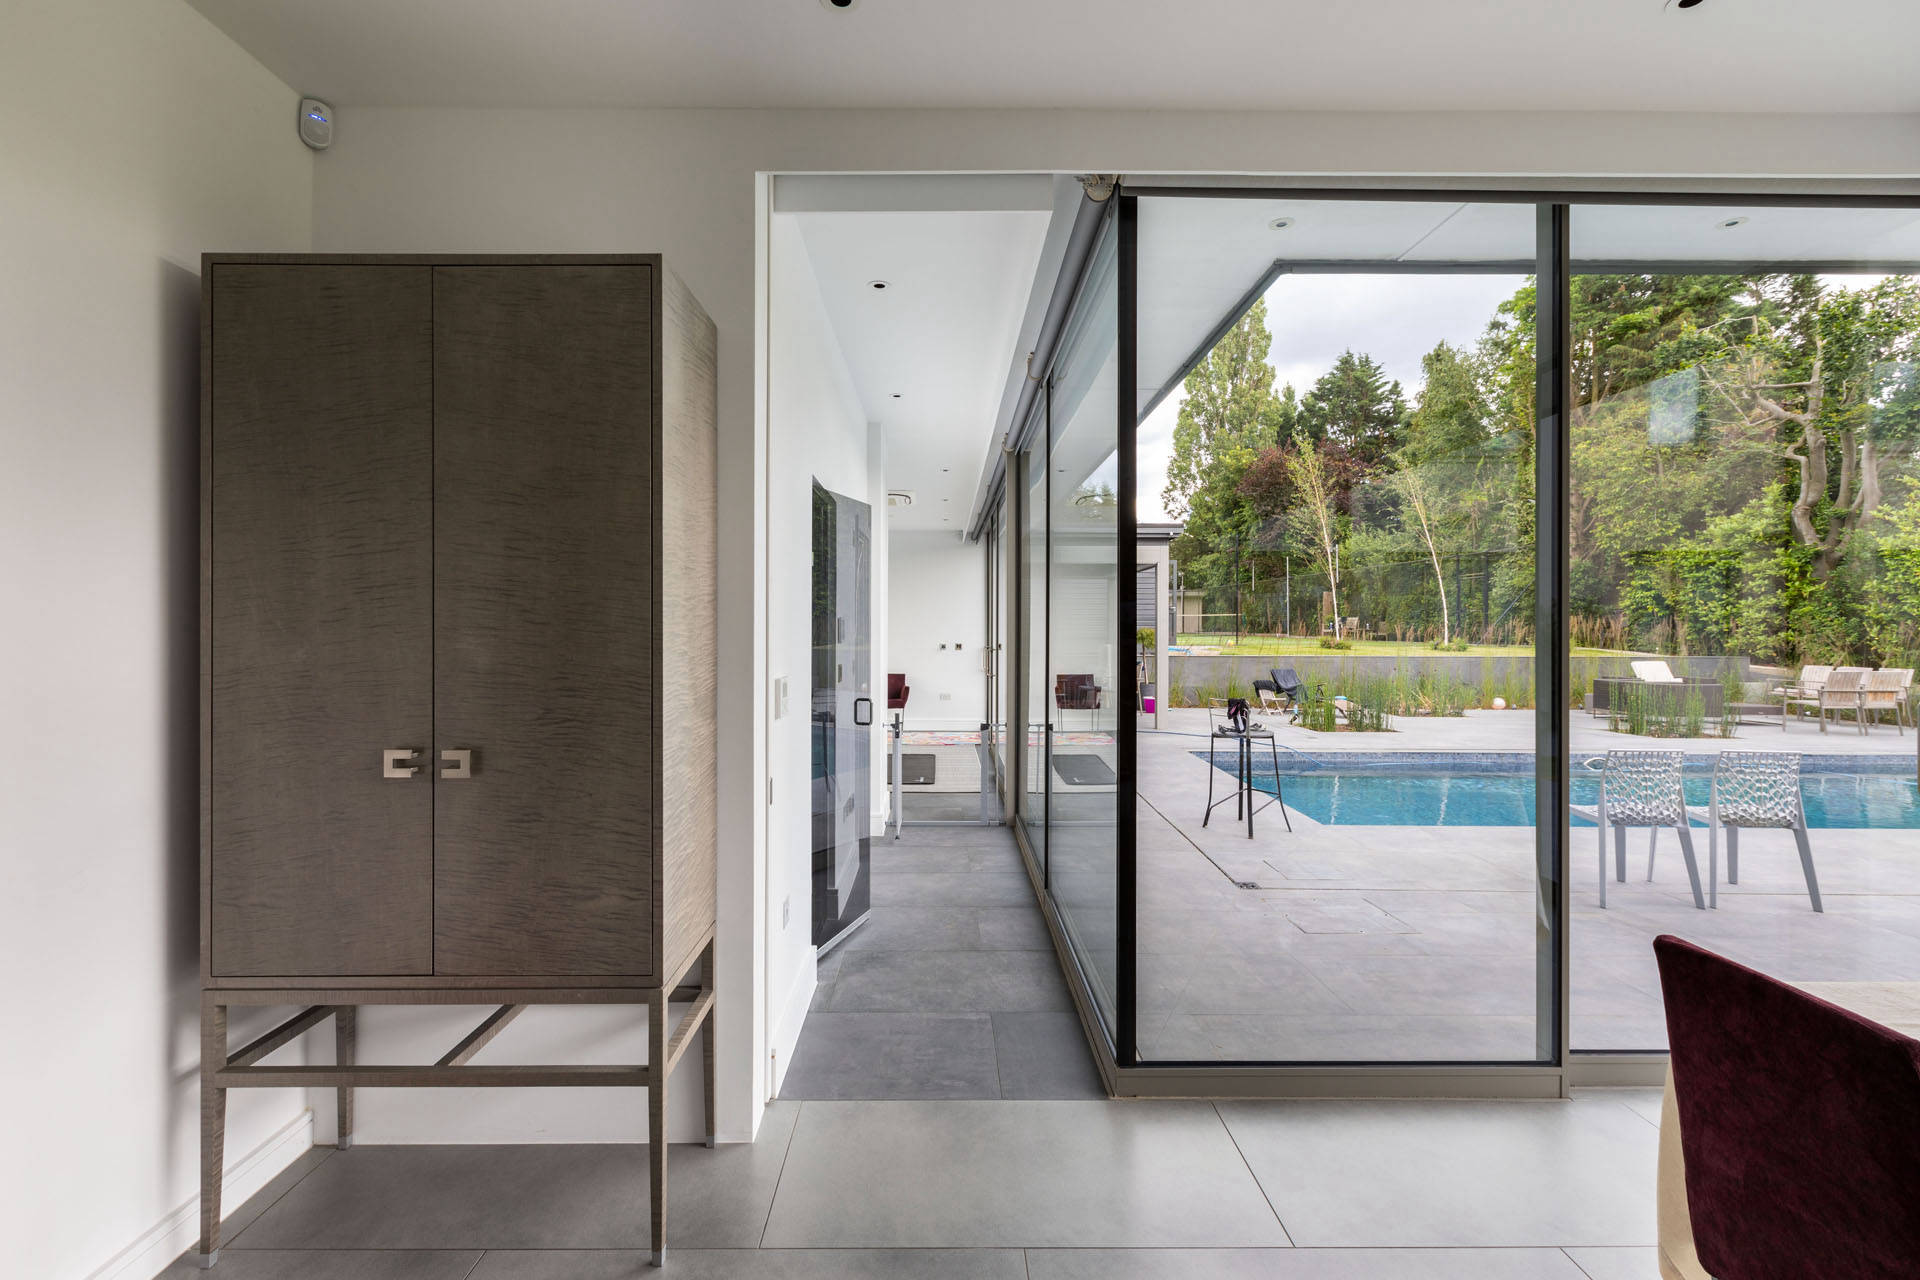 Sliding Glass Panels in a House Extension Built by a Construction Company in London